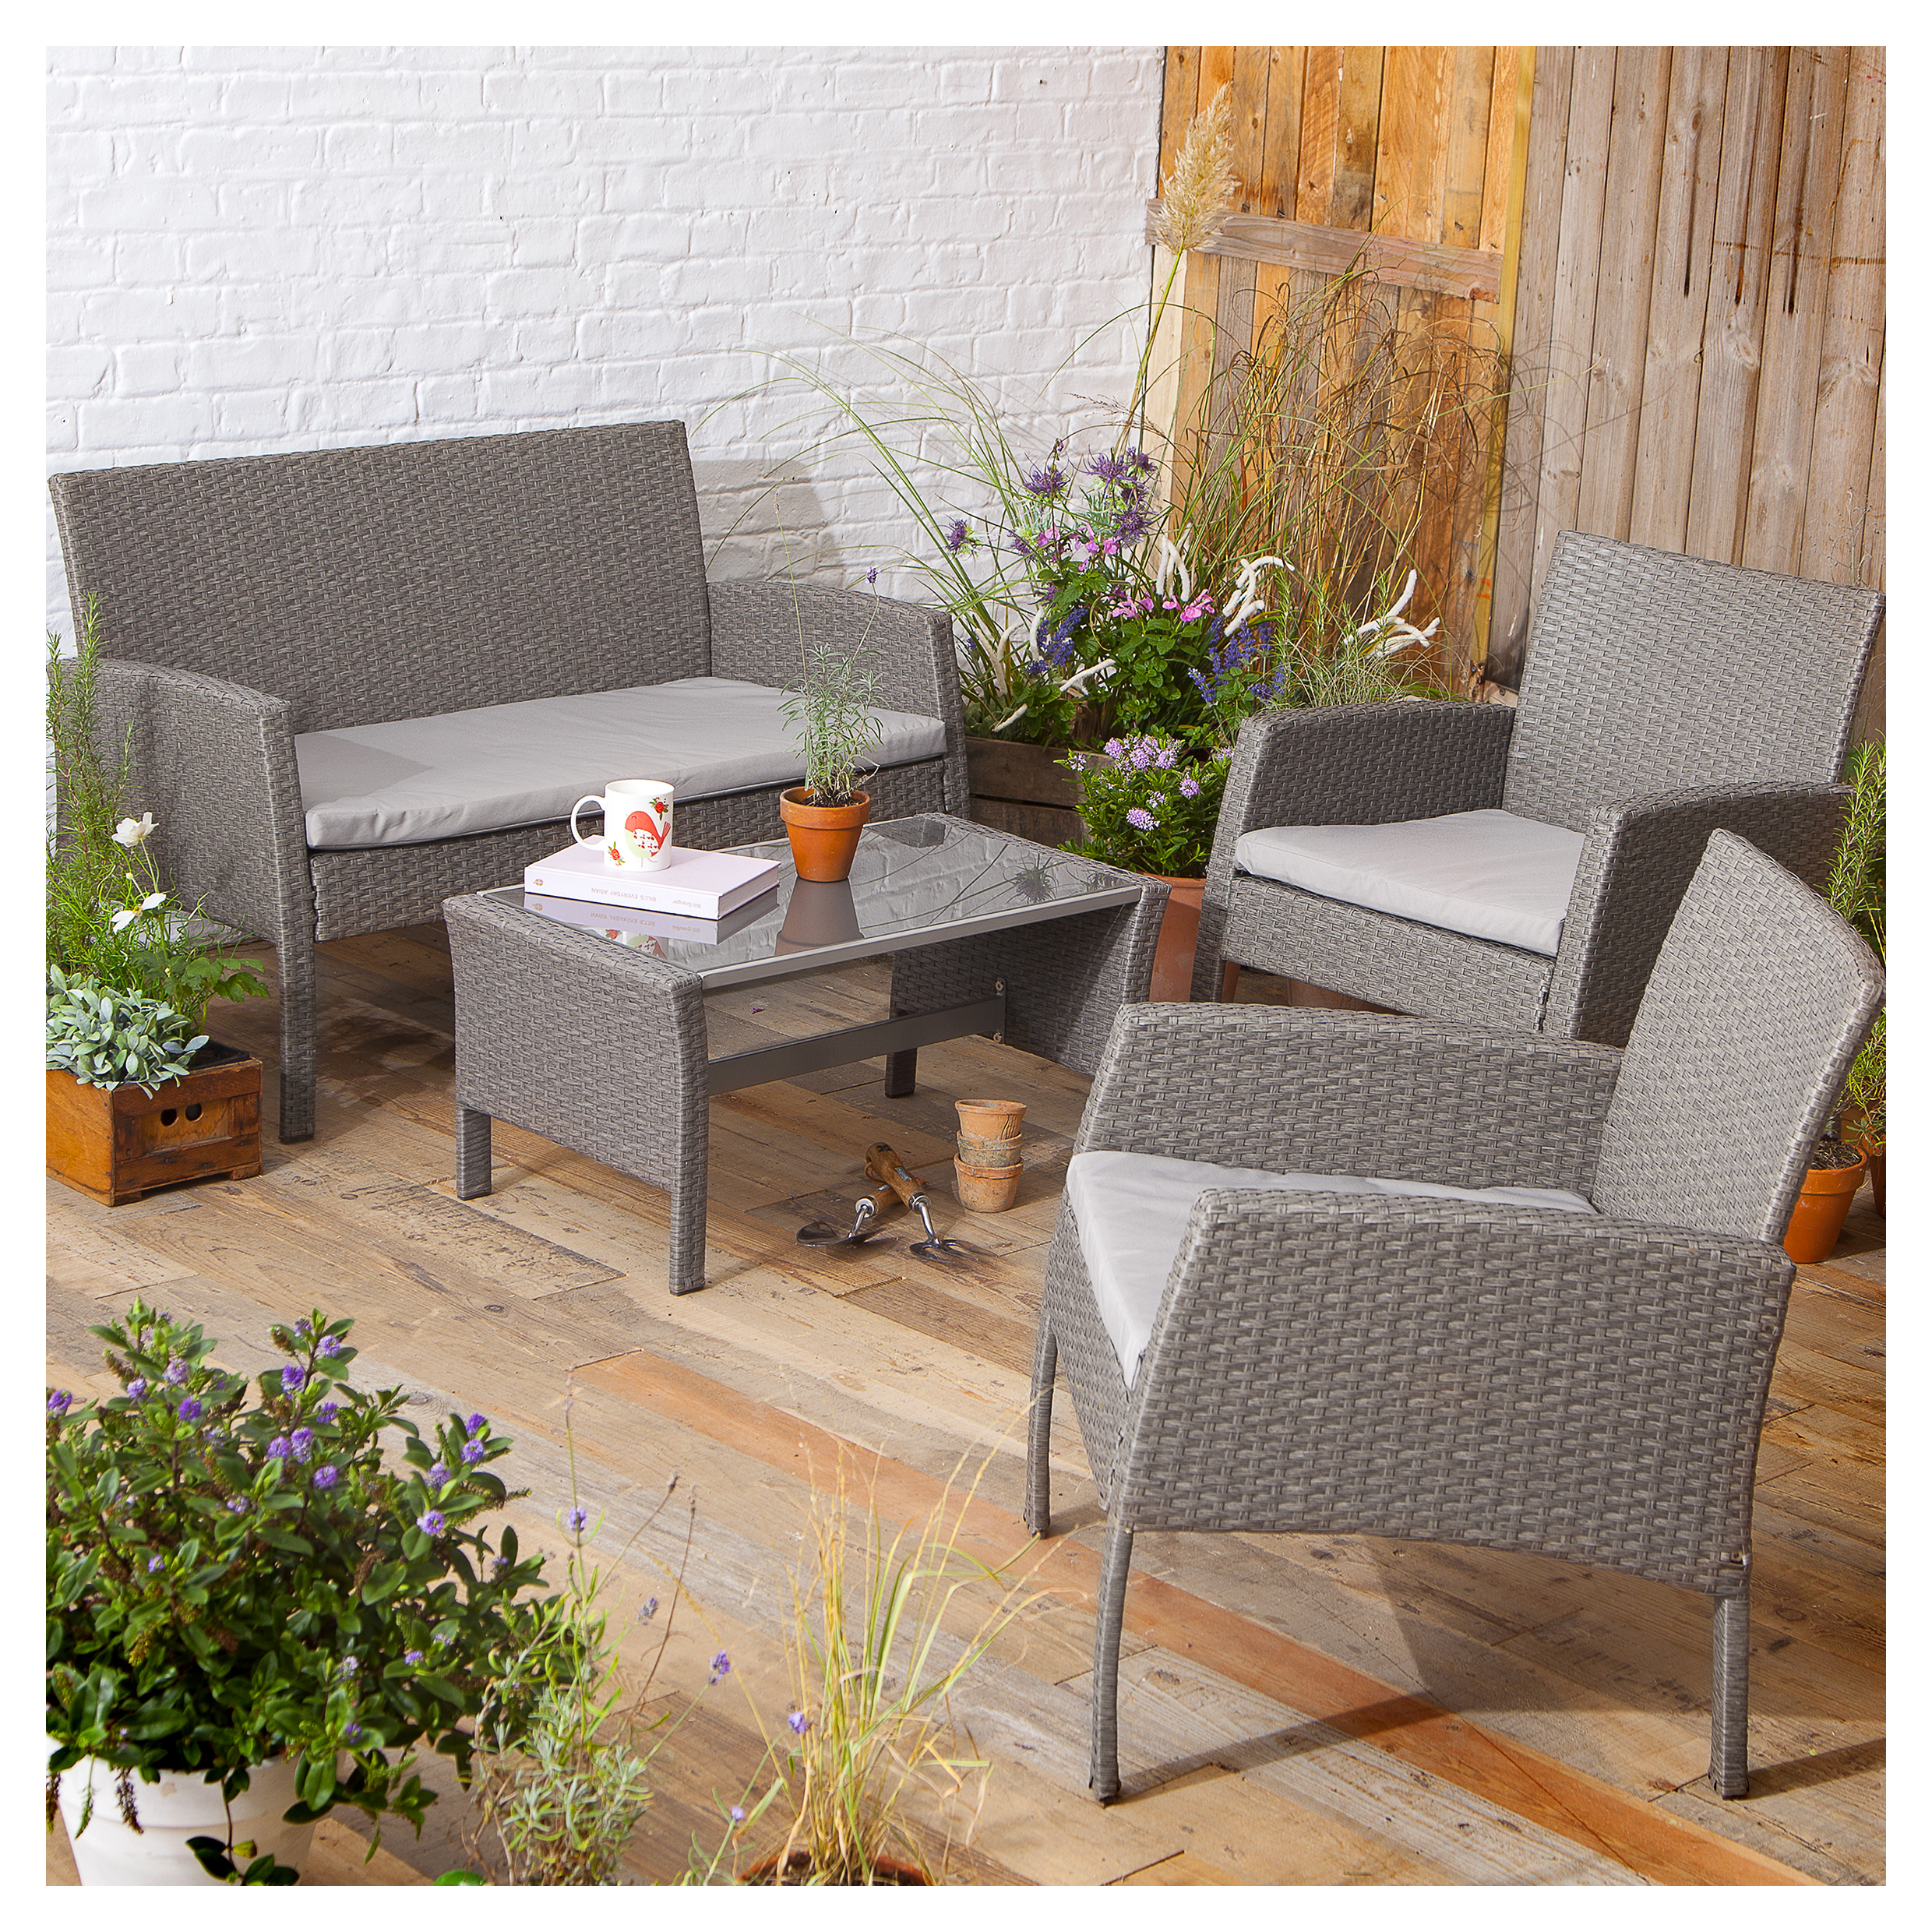 Save up to 6% on Tesco garden furniture and barbecues — Yours